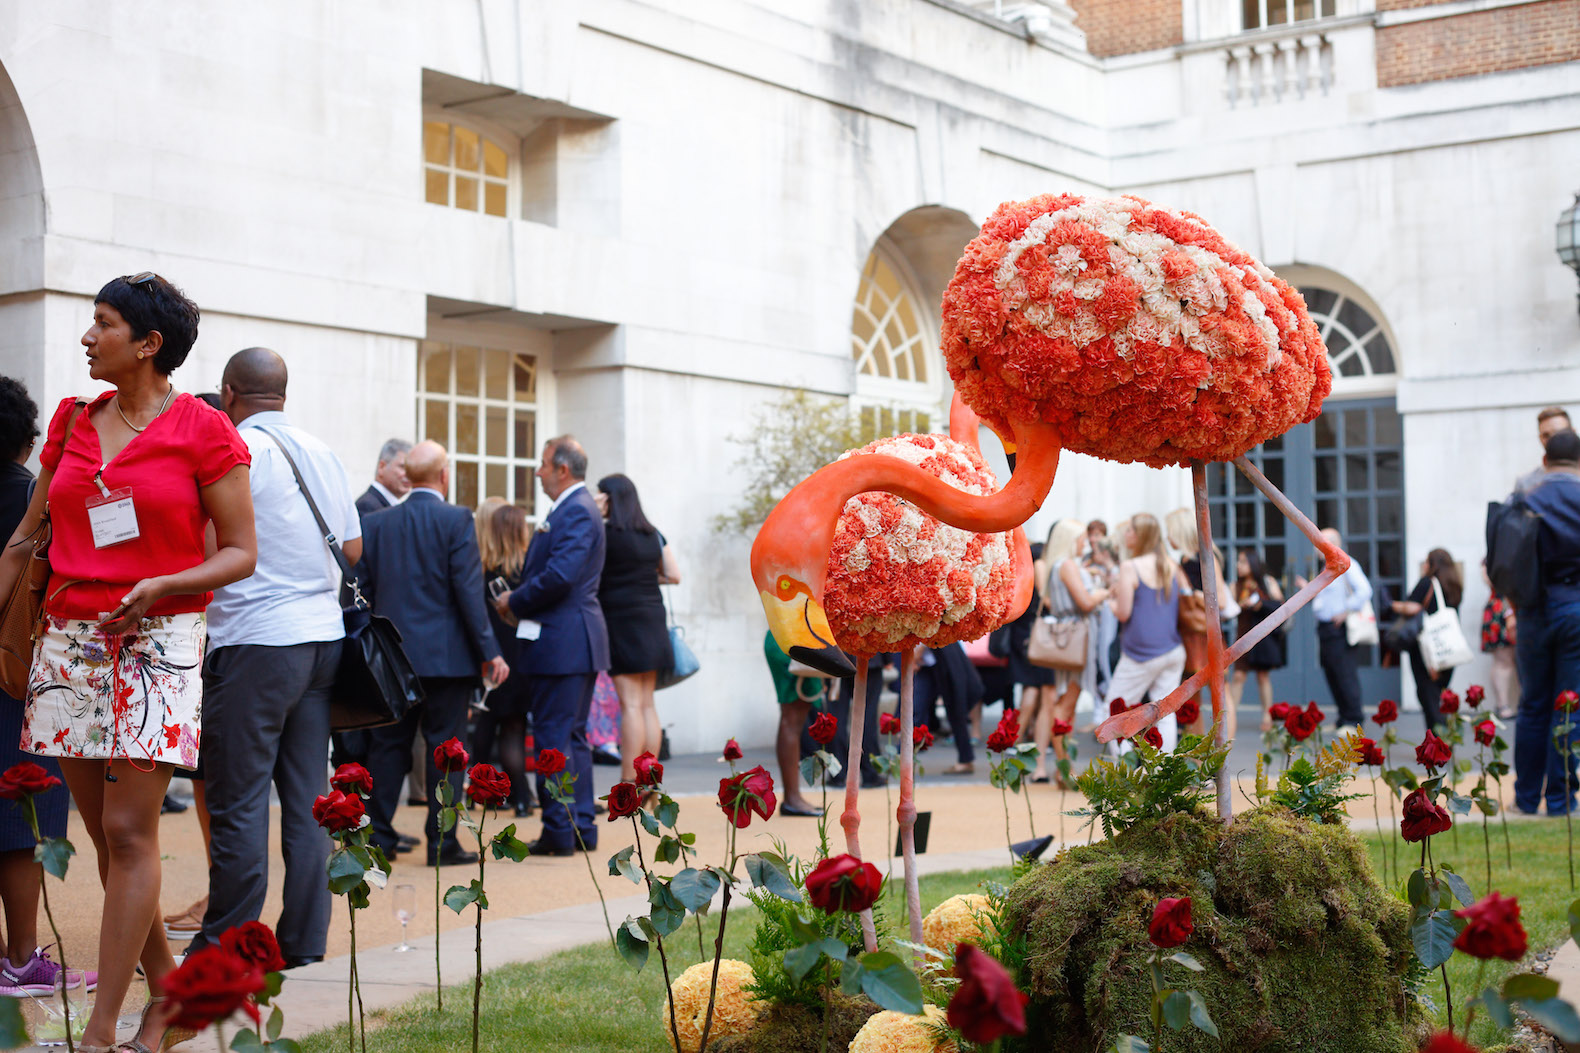 BMA house Alice in wonderland secret garden Flamingos red roses pink carnations coral orange croquet